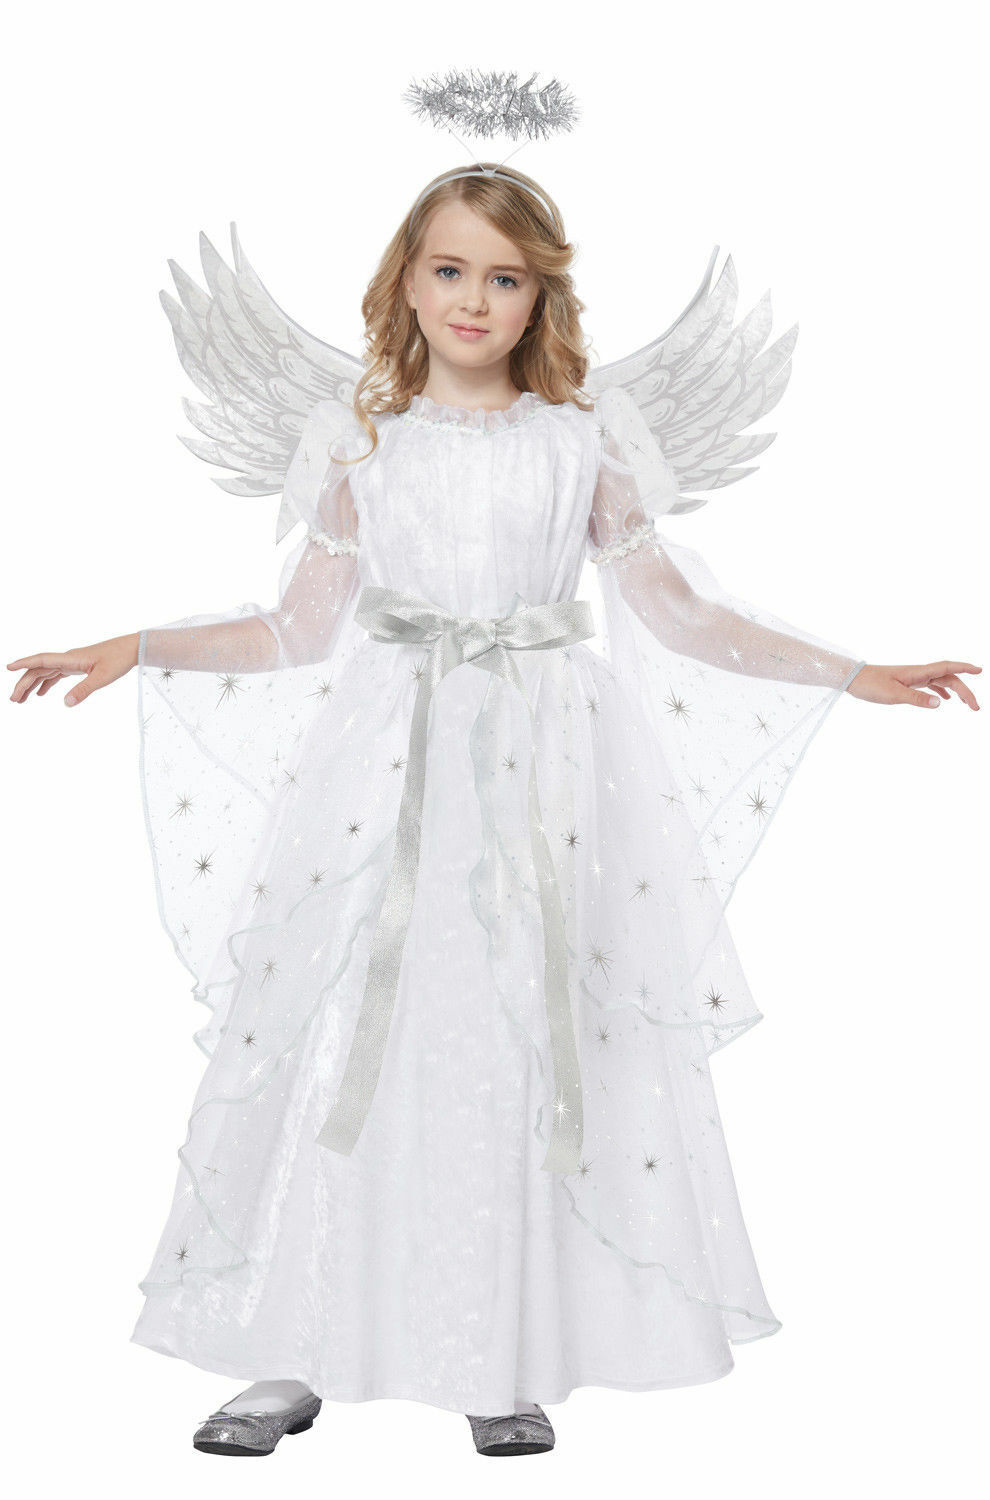 RUBIES HEAVENLY ANGEL COSTUME HALO WINGS SIZE INFANT BABY 1-9 mo MONTH HALLOWEEN